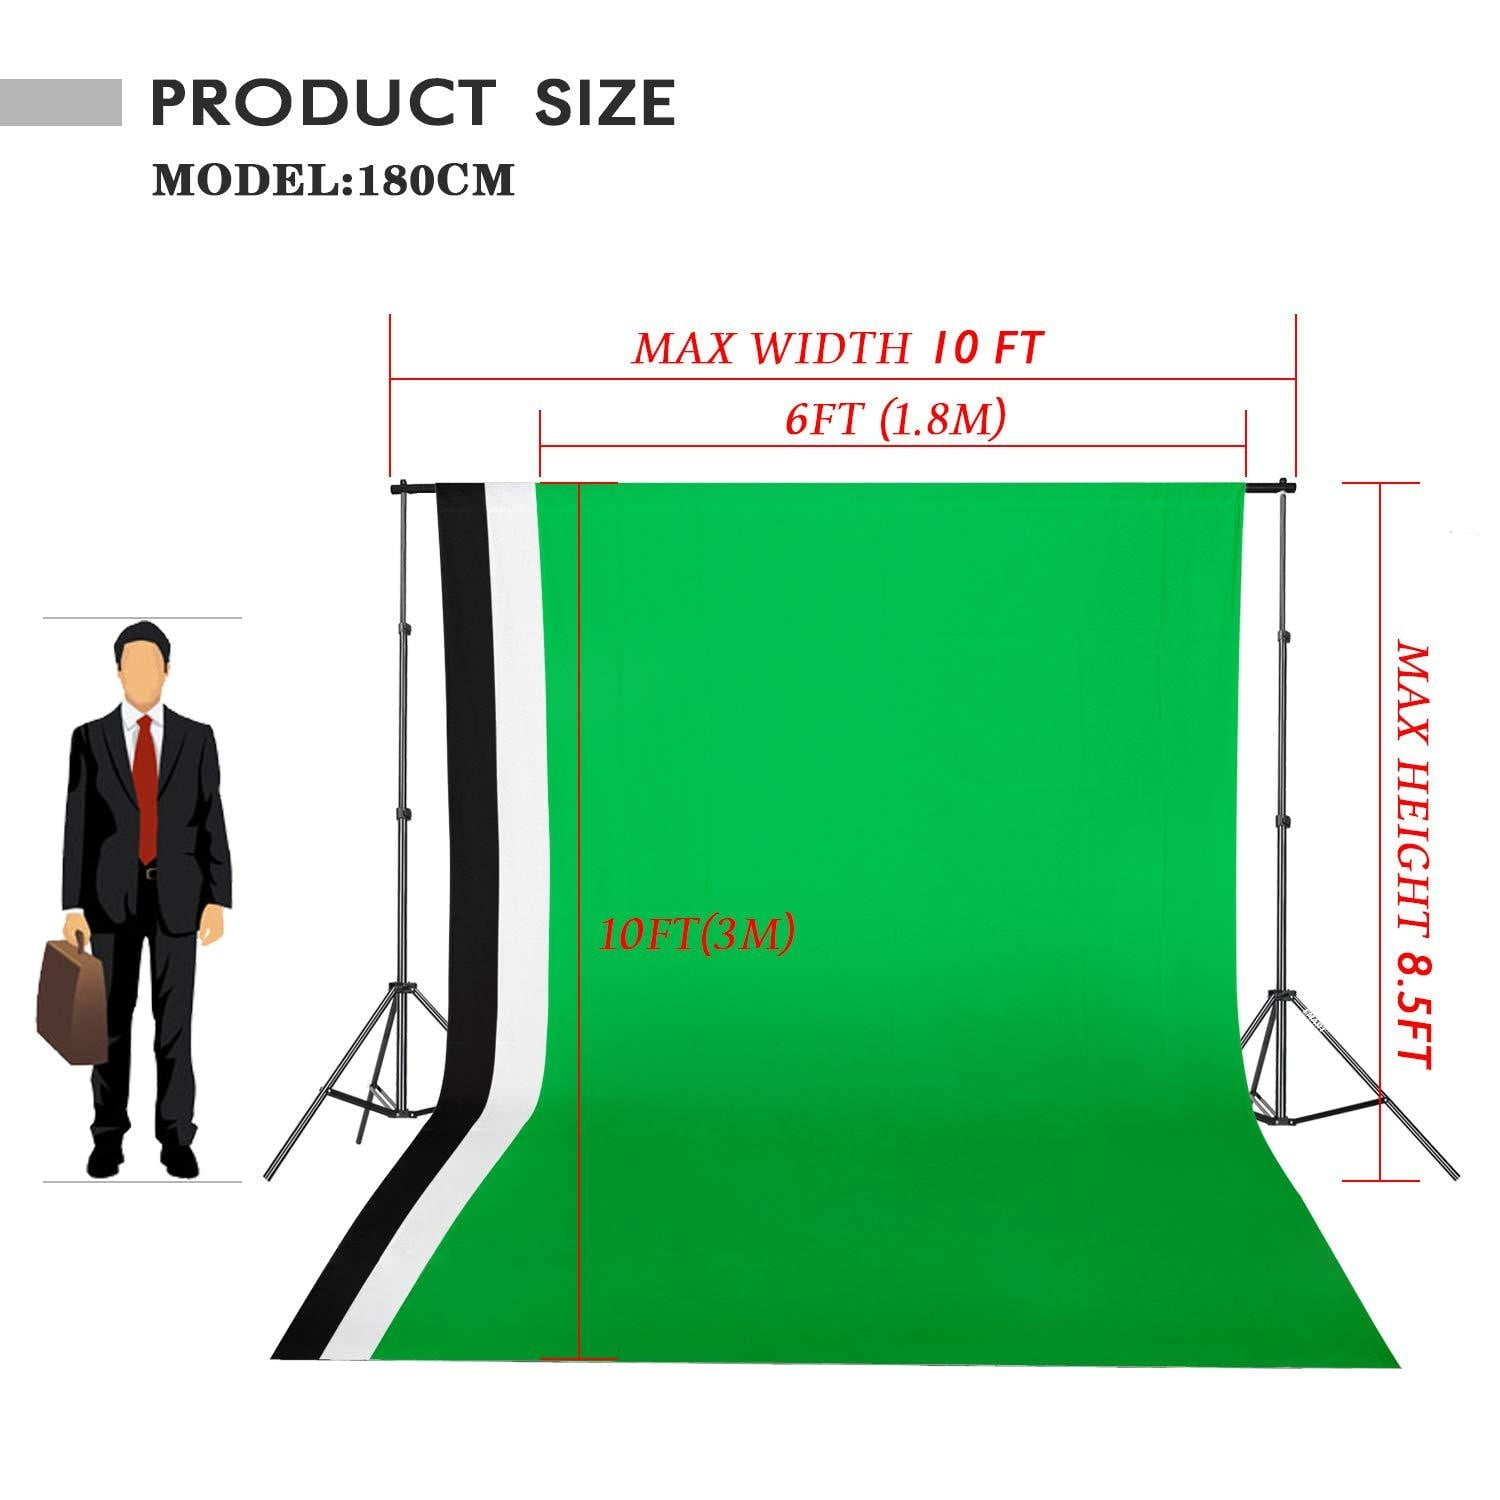 Emart 8.5 x 10 ft Backdrop Support System, Photography Video Studio - EMART8